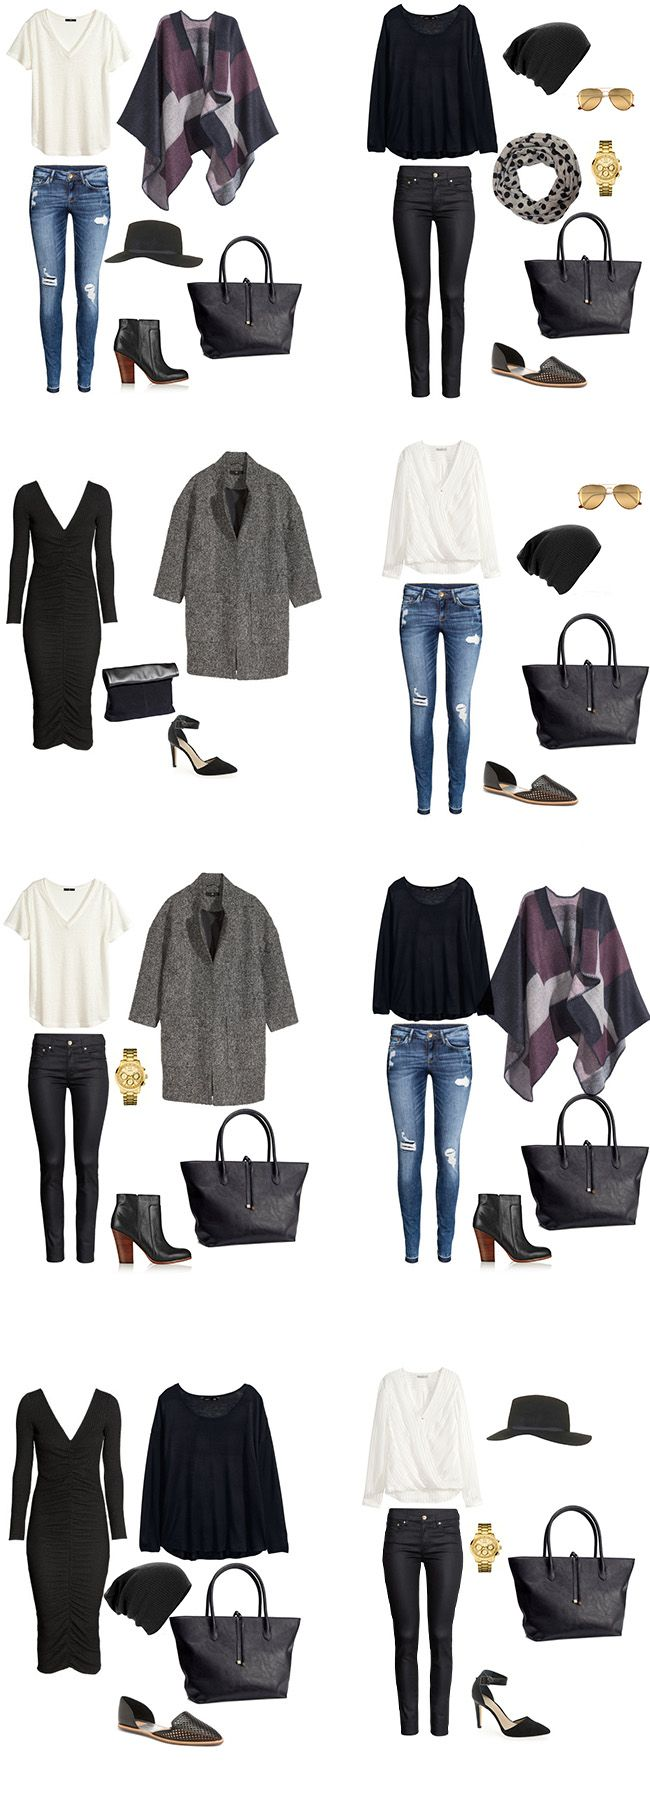 5 Days in New York City Packing List -   24 new york outfits